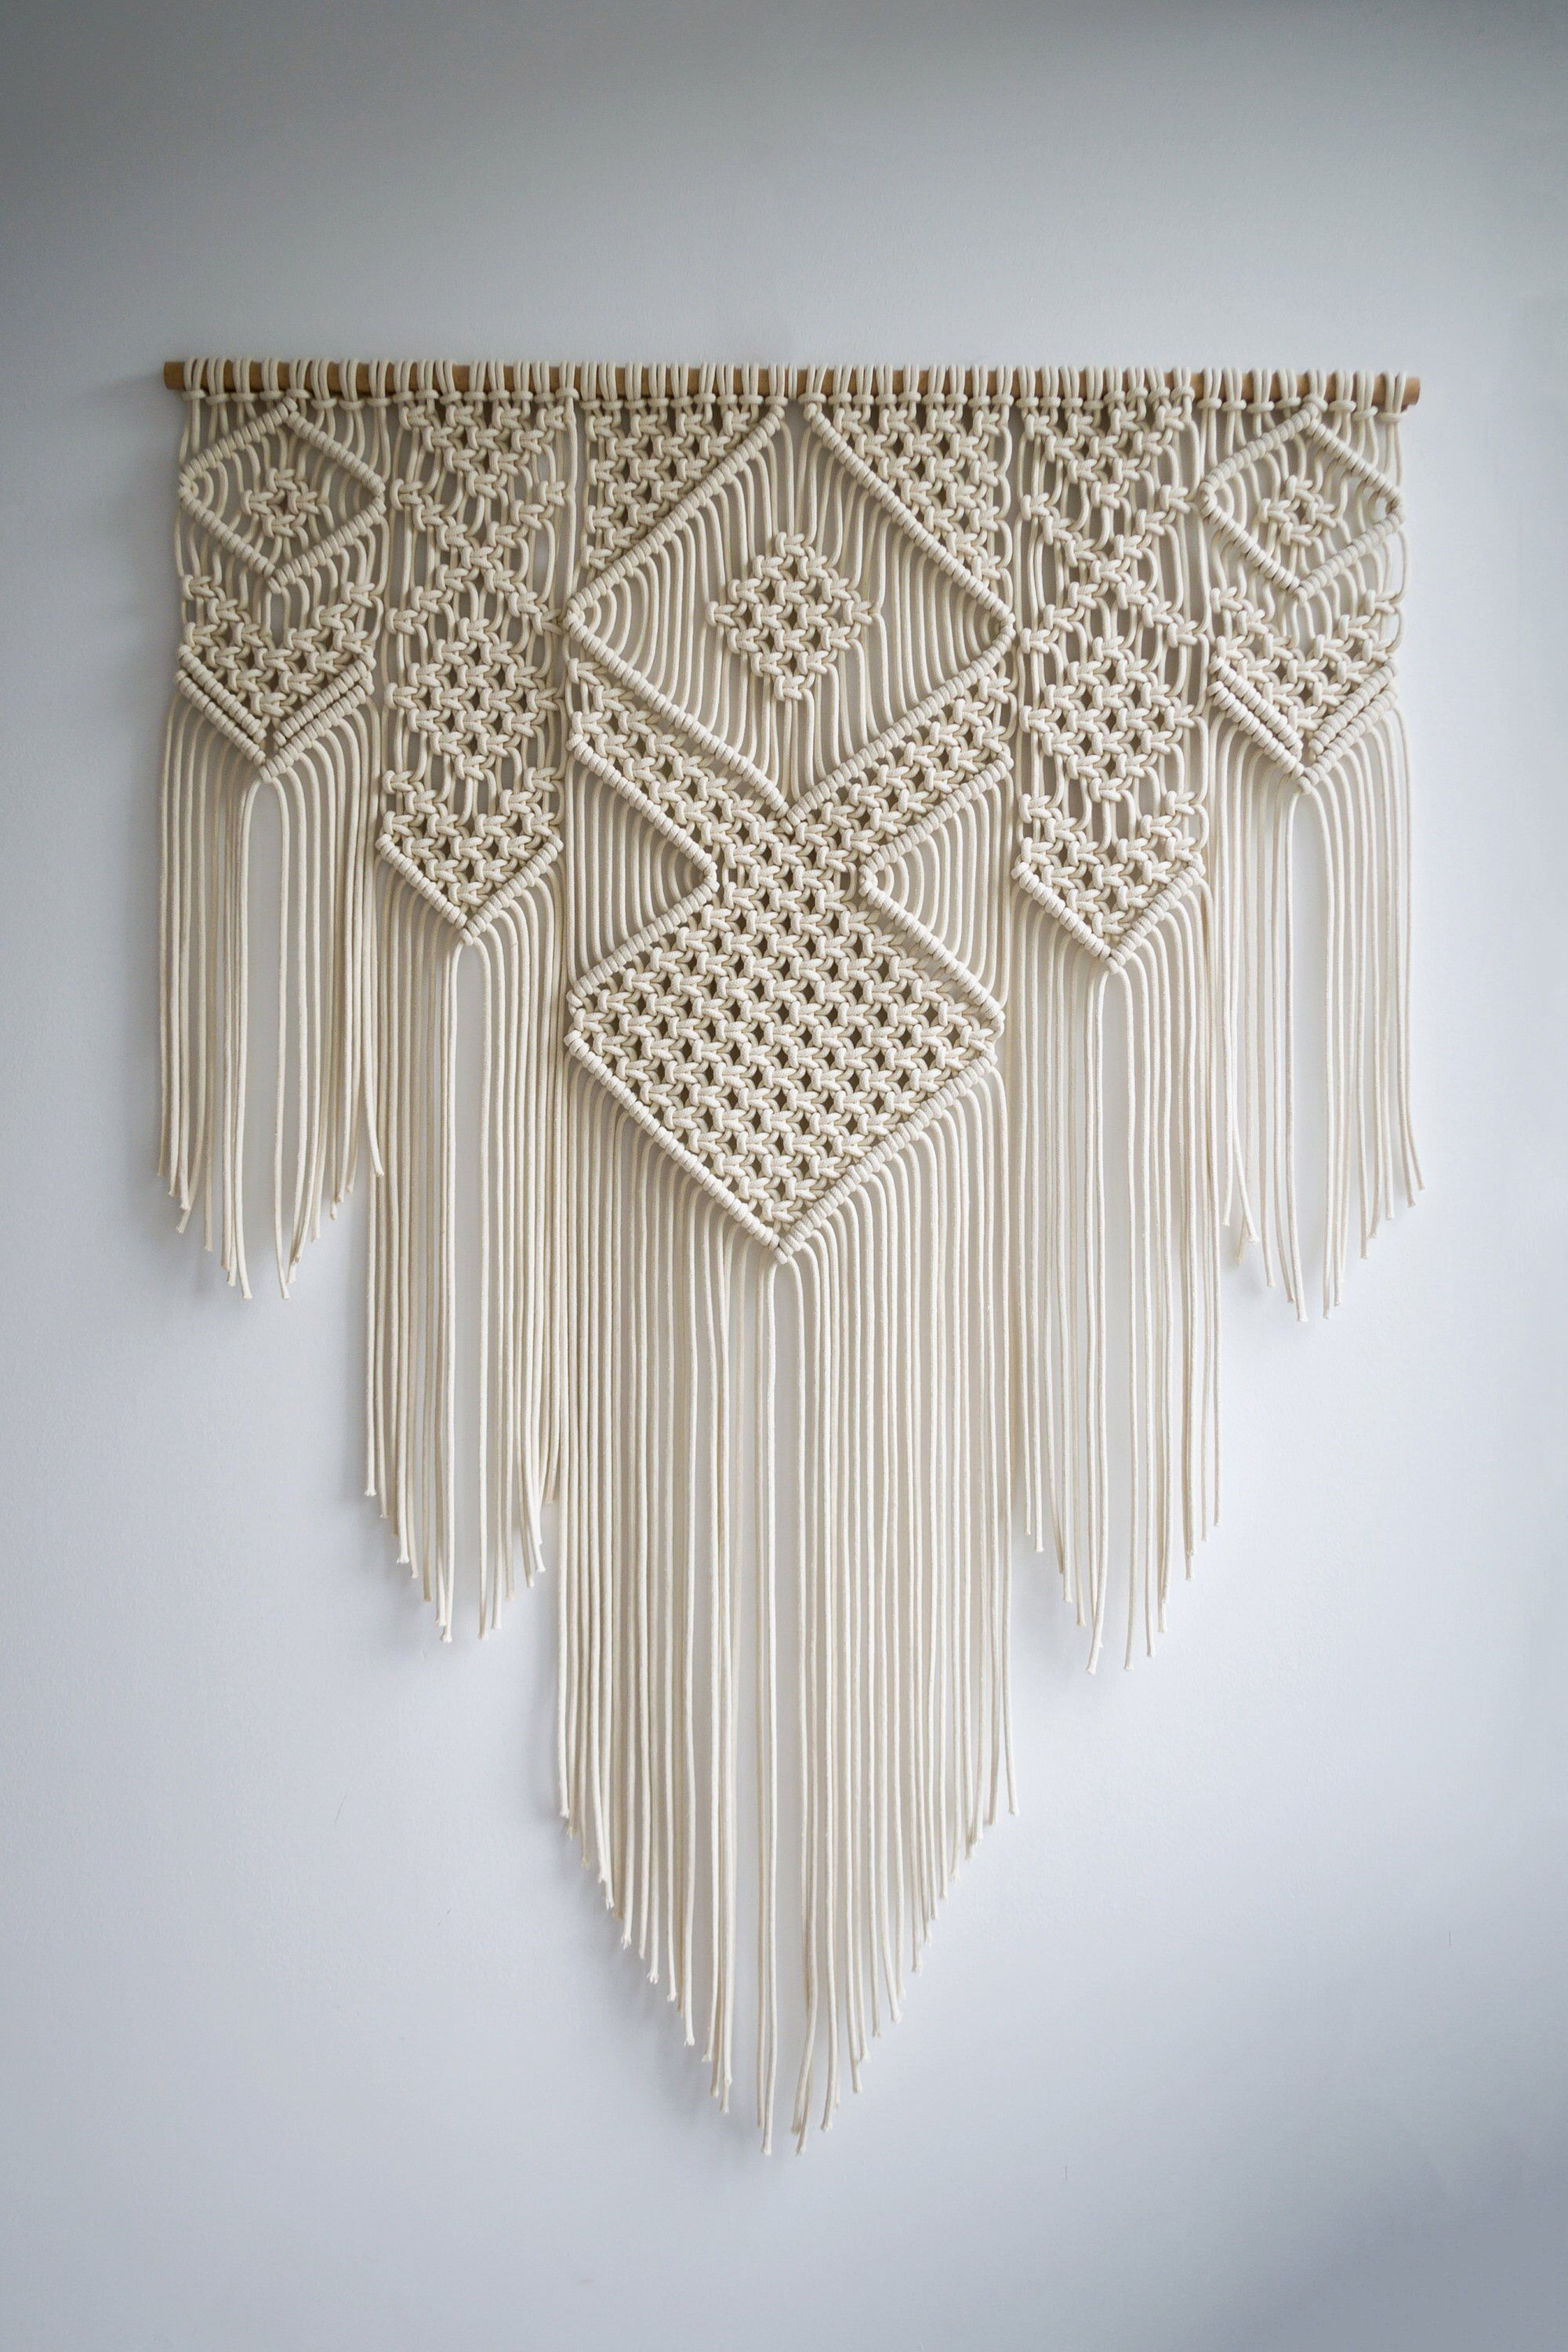 large macrame wall hanging available in different colors on macrame wall hanging id=48897